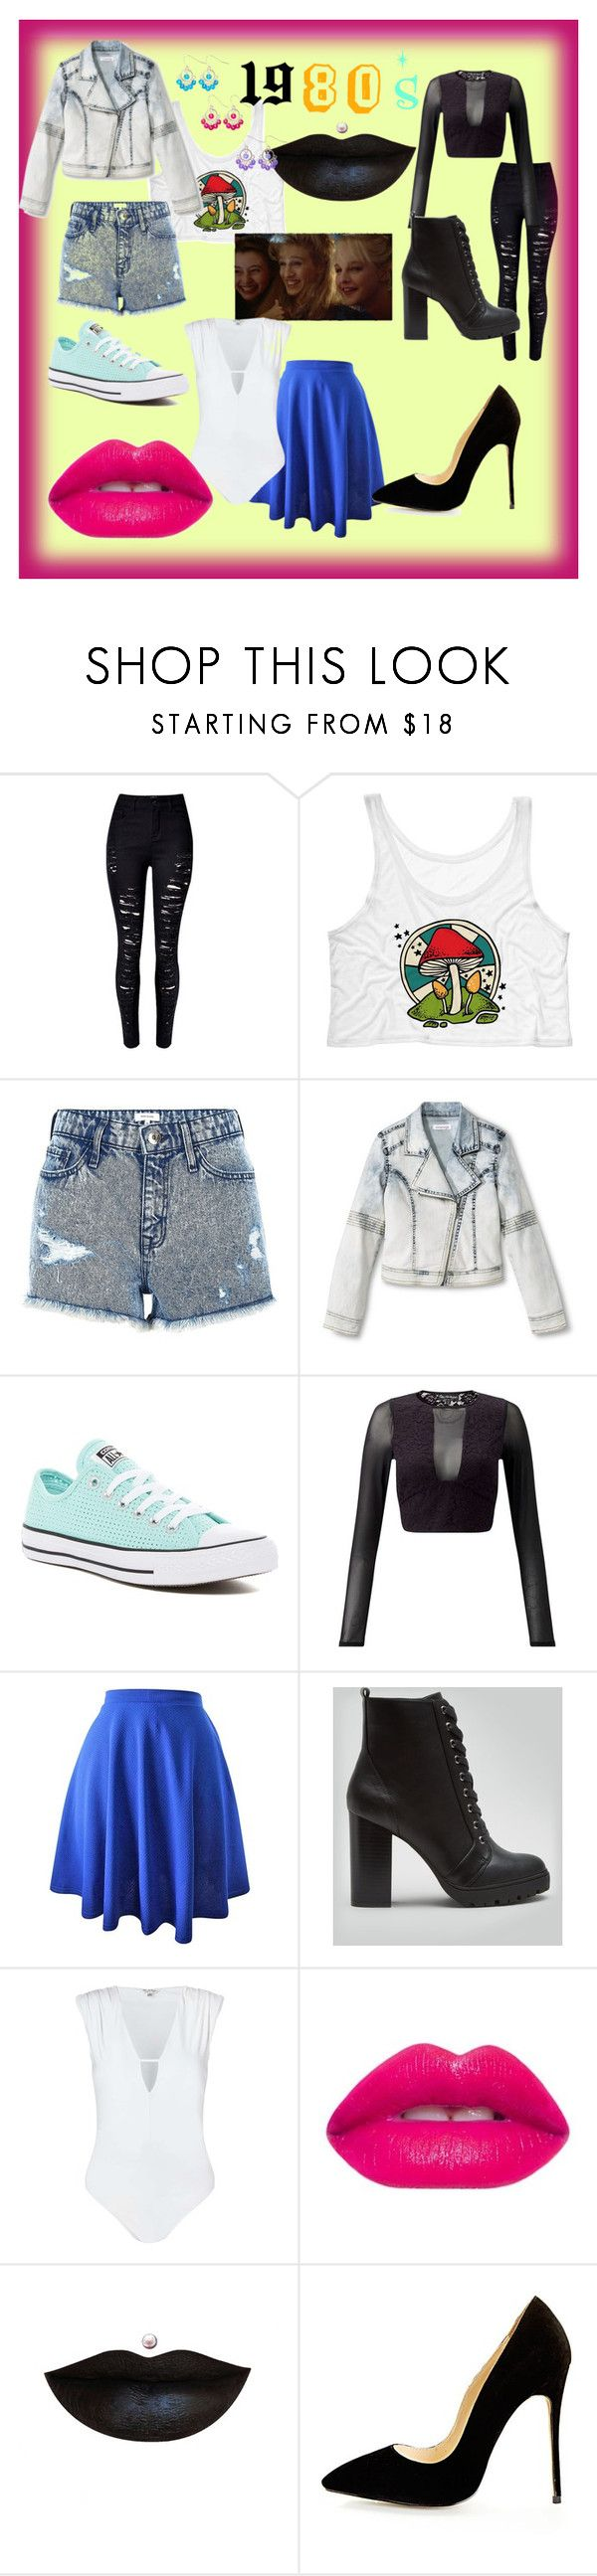 """""""1980s"""" by jmclarty on Polyvore featuring WithChic, River Island, Converse, Miss Selfridge, New Look and Anastasia Beverly Hills"""